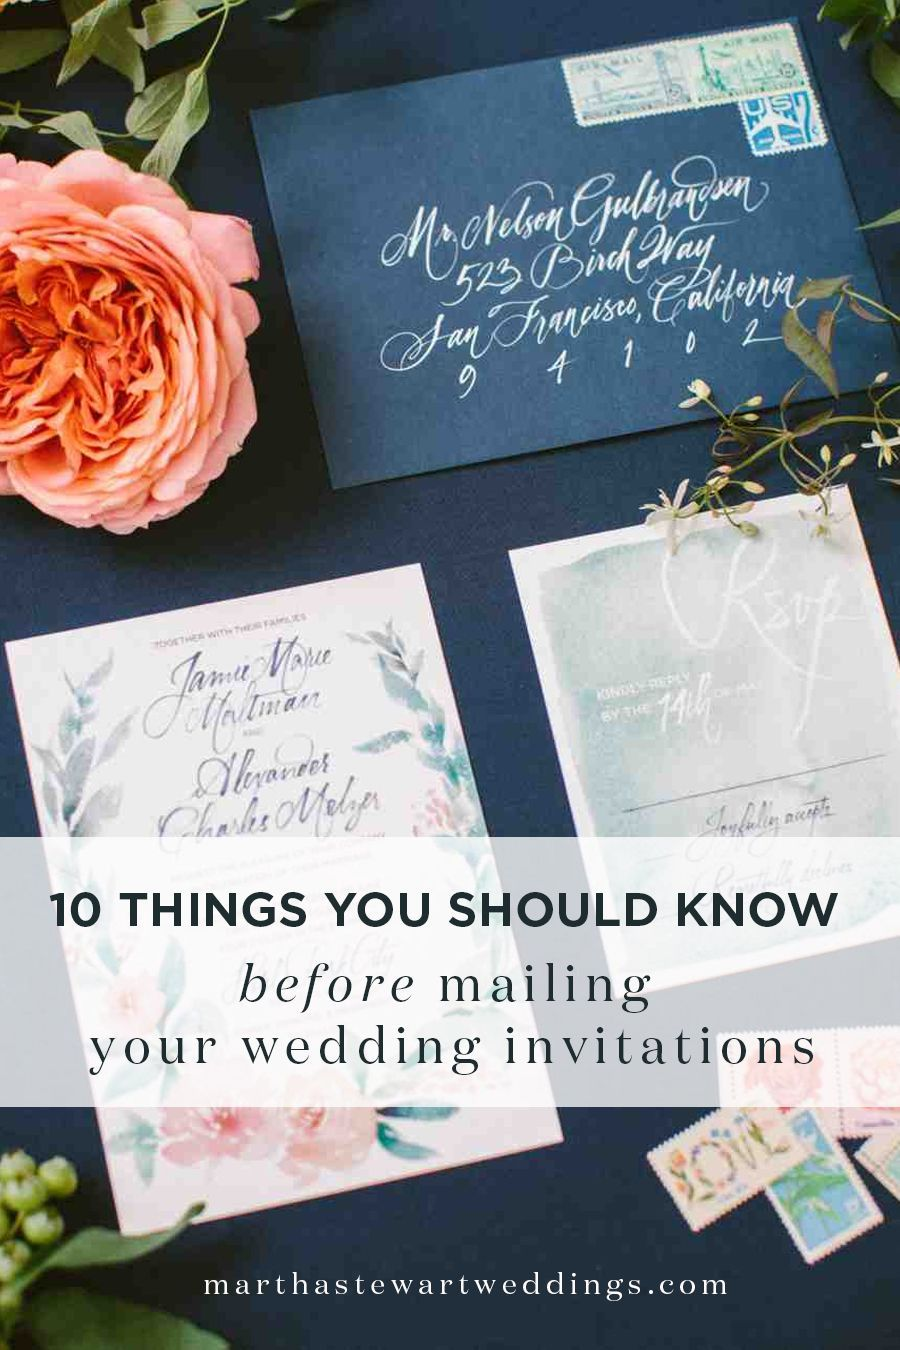 10 Things You Should Know Before Mailing Your Wedding Invitations ...